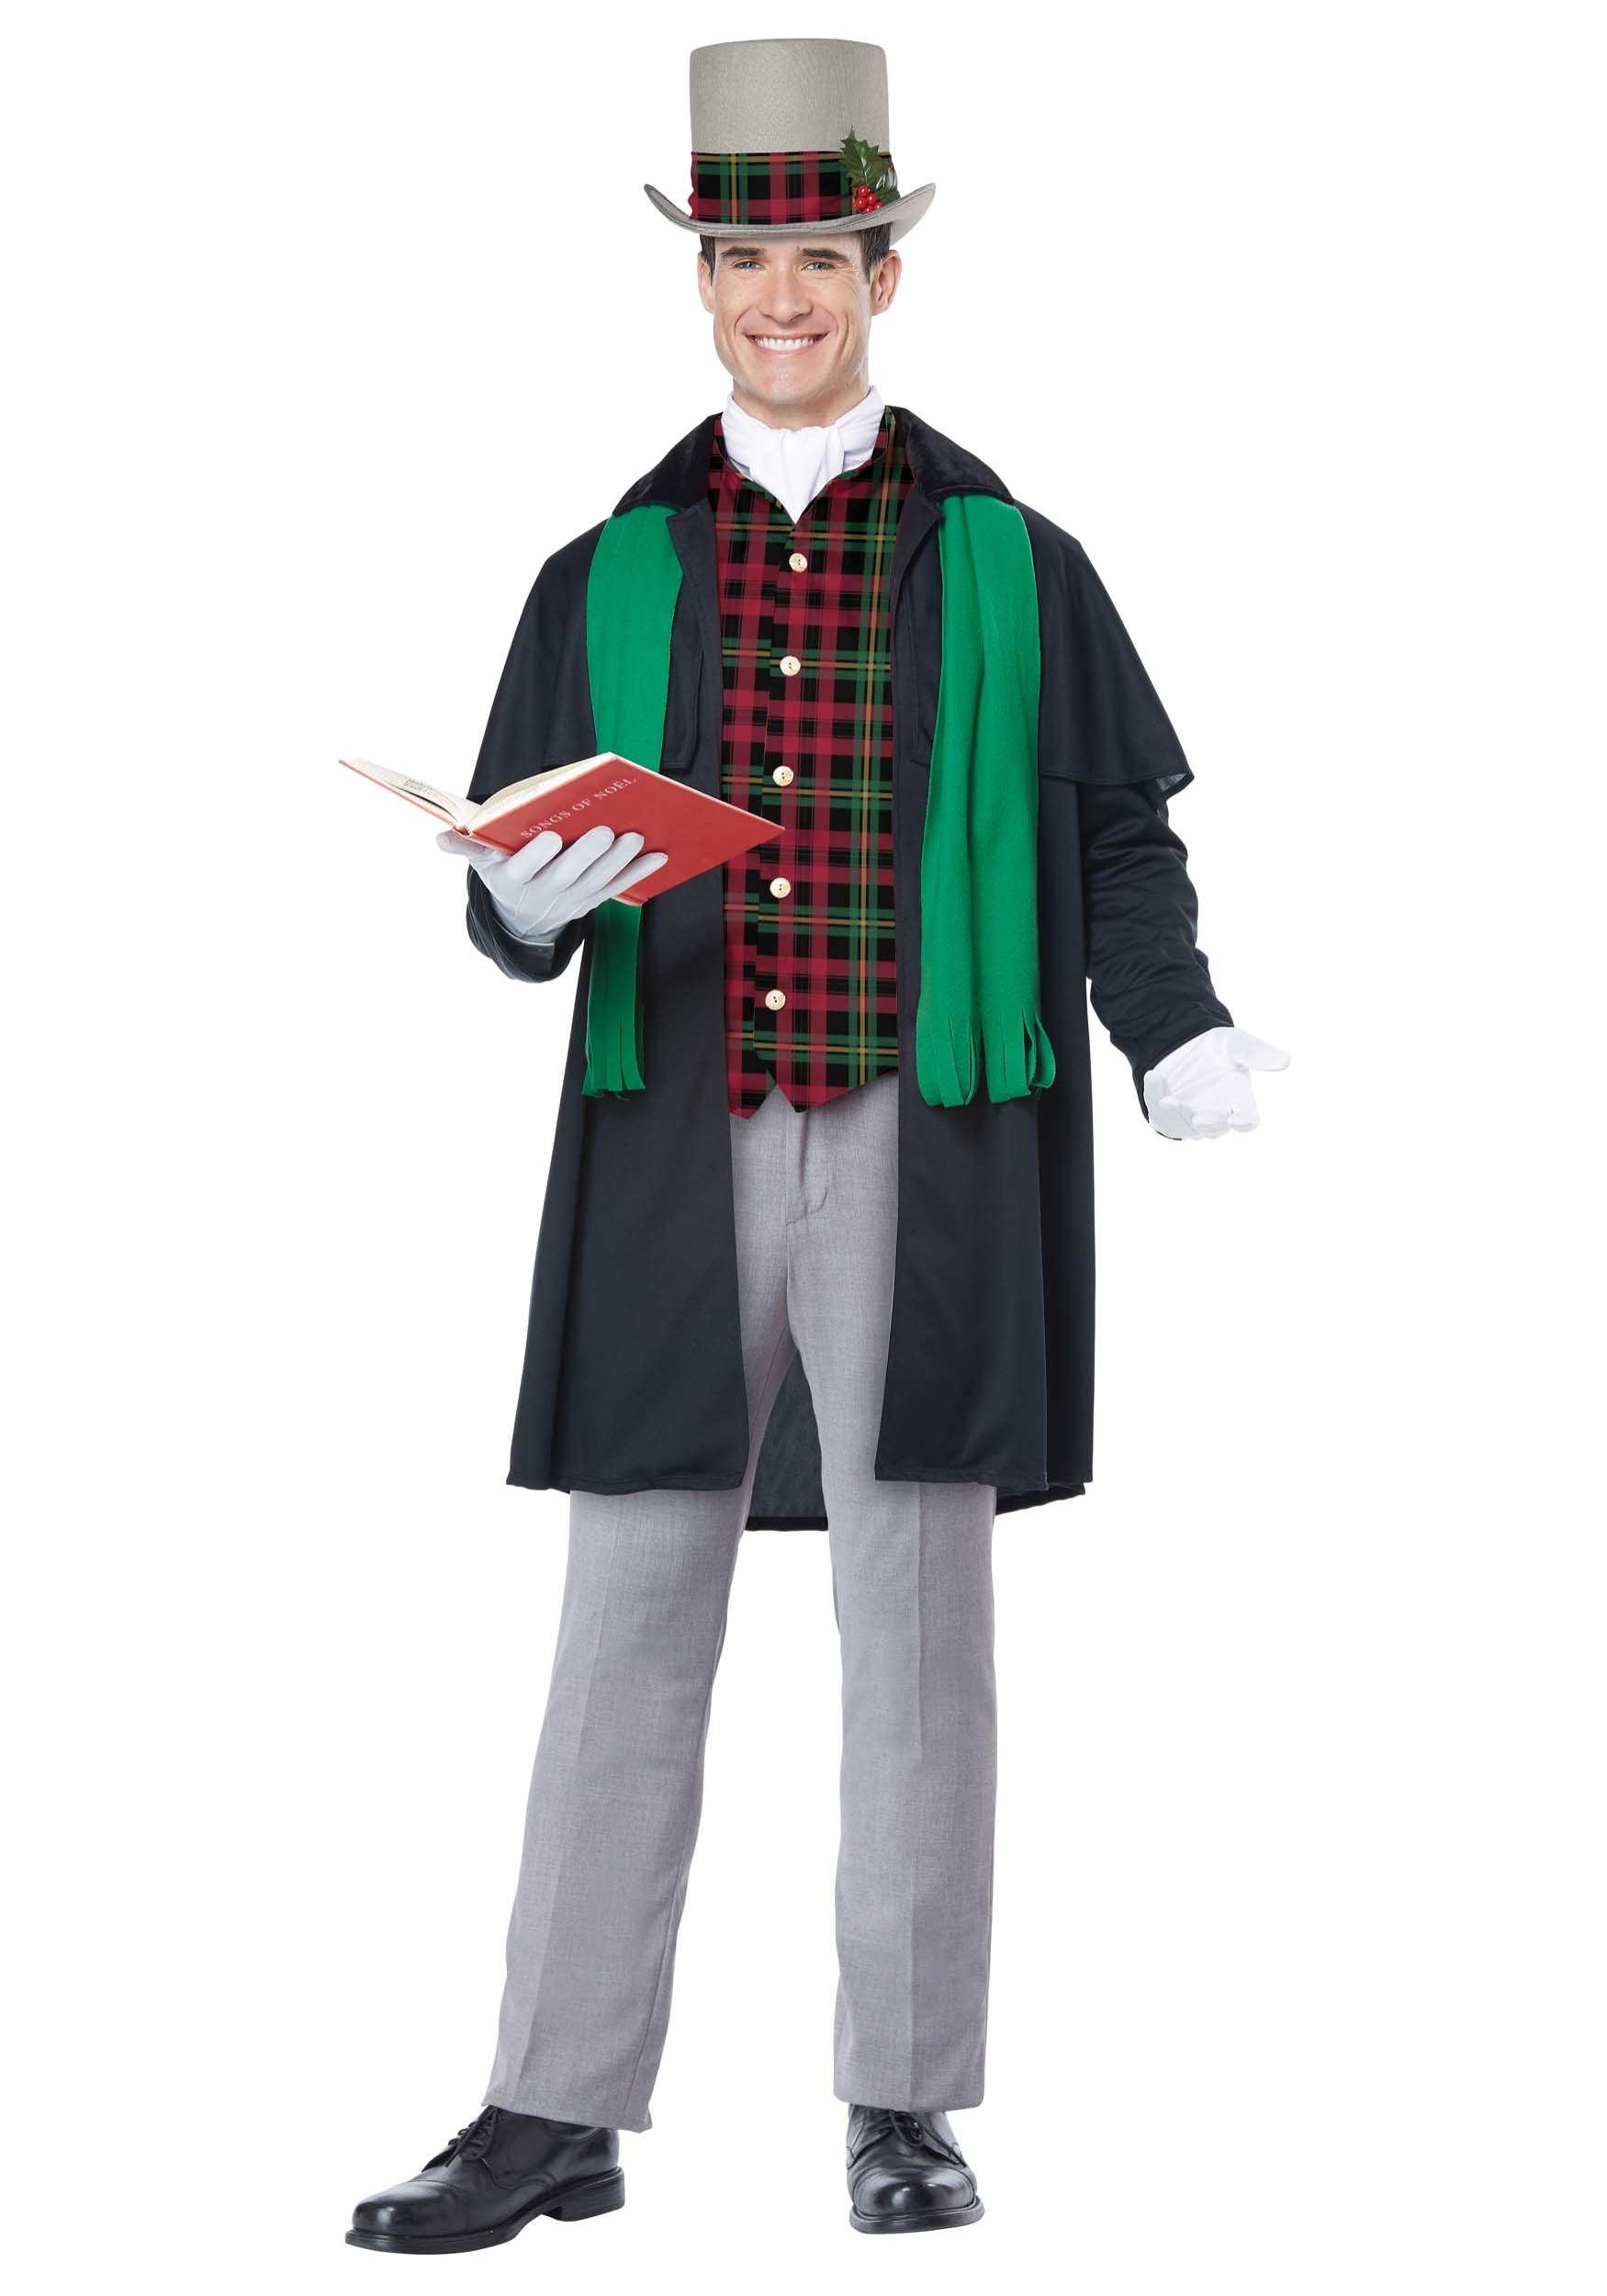 Christmas Caroling Costume.Details About Men S Holiday Christmas Caroler Costume Victorian Dickens Historical